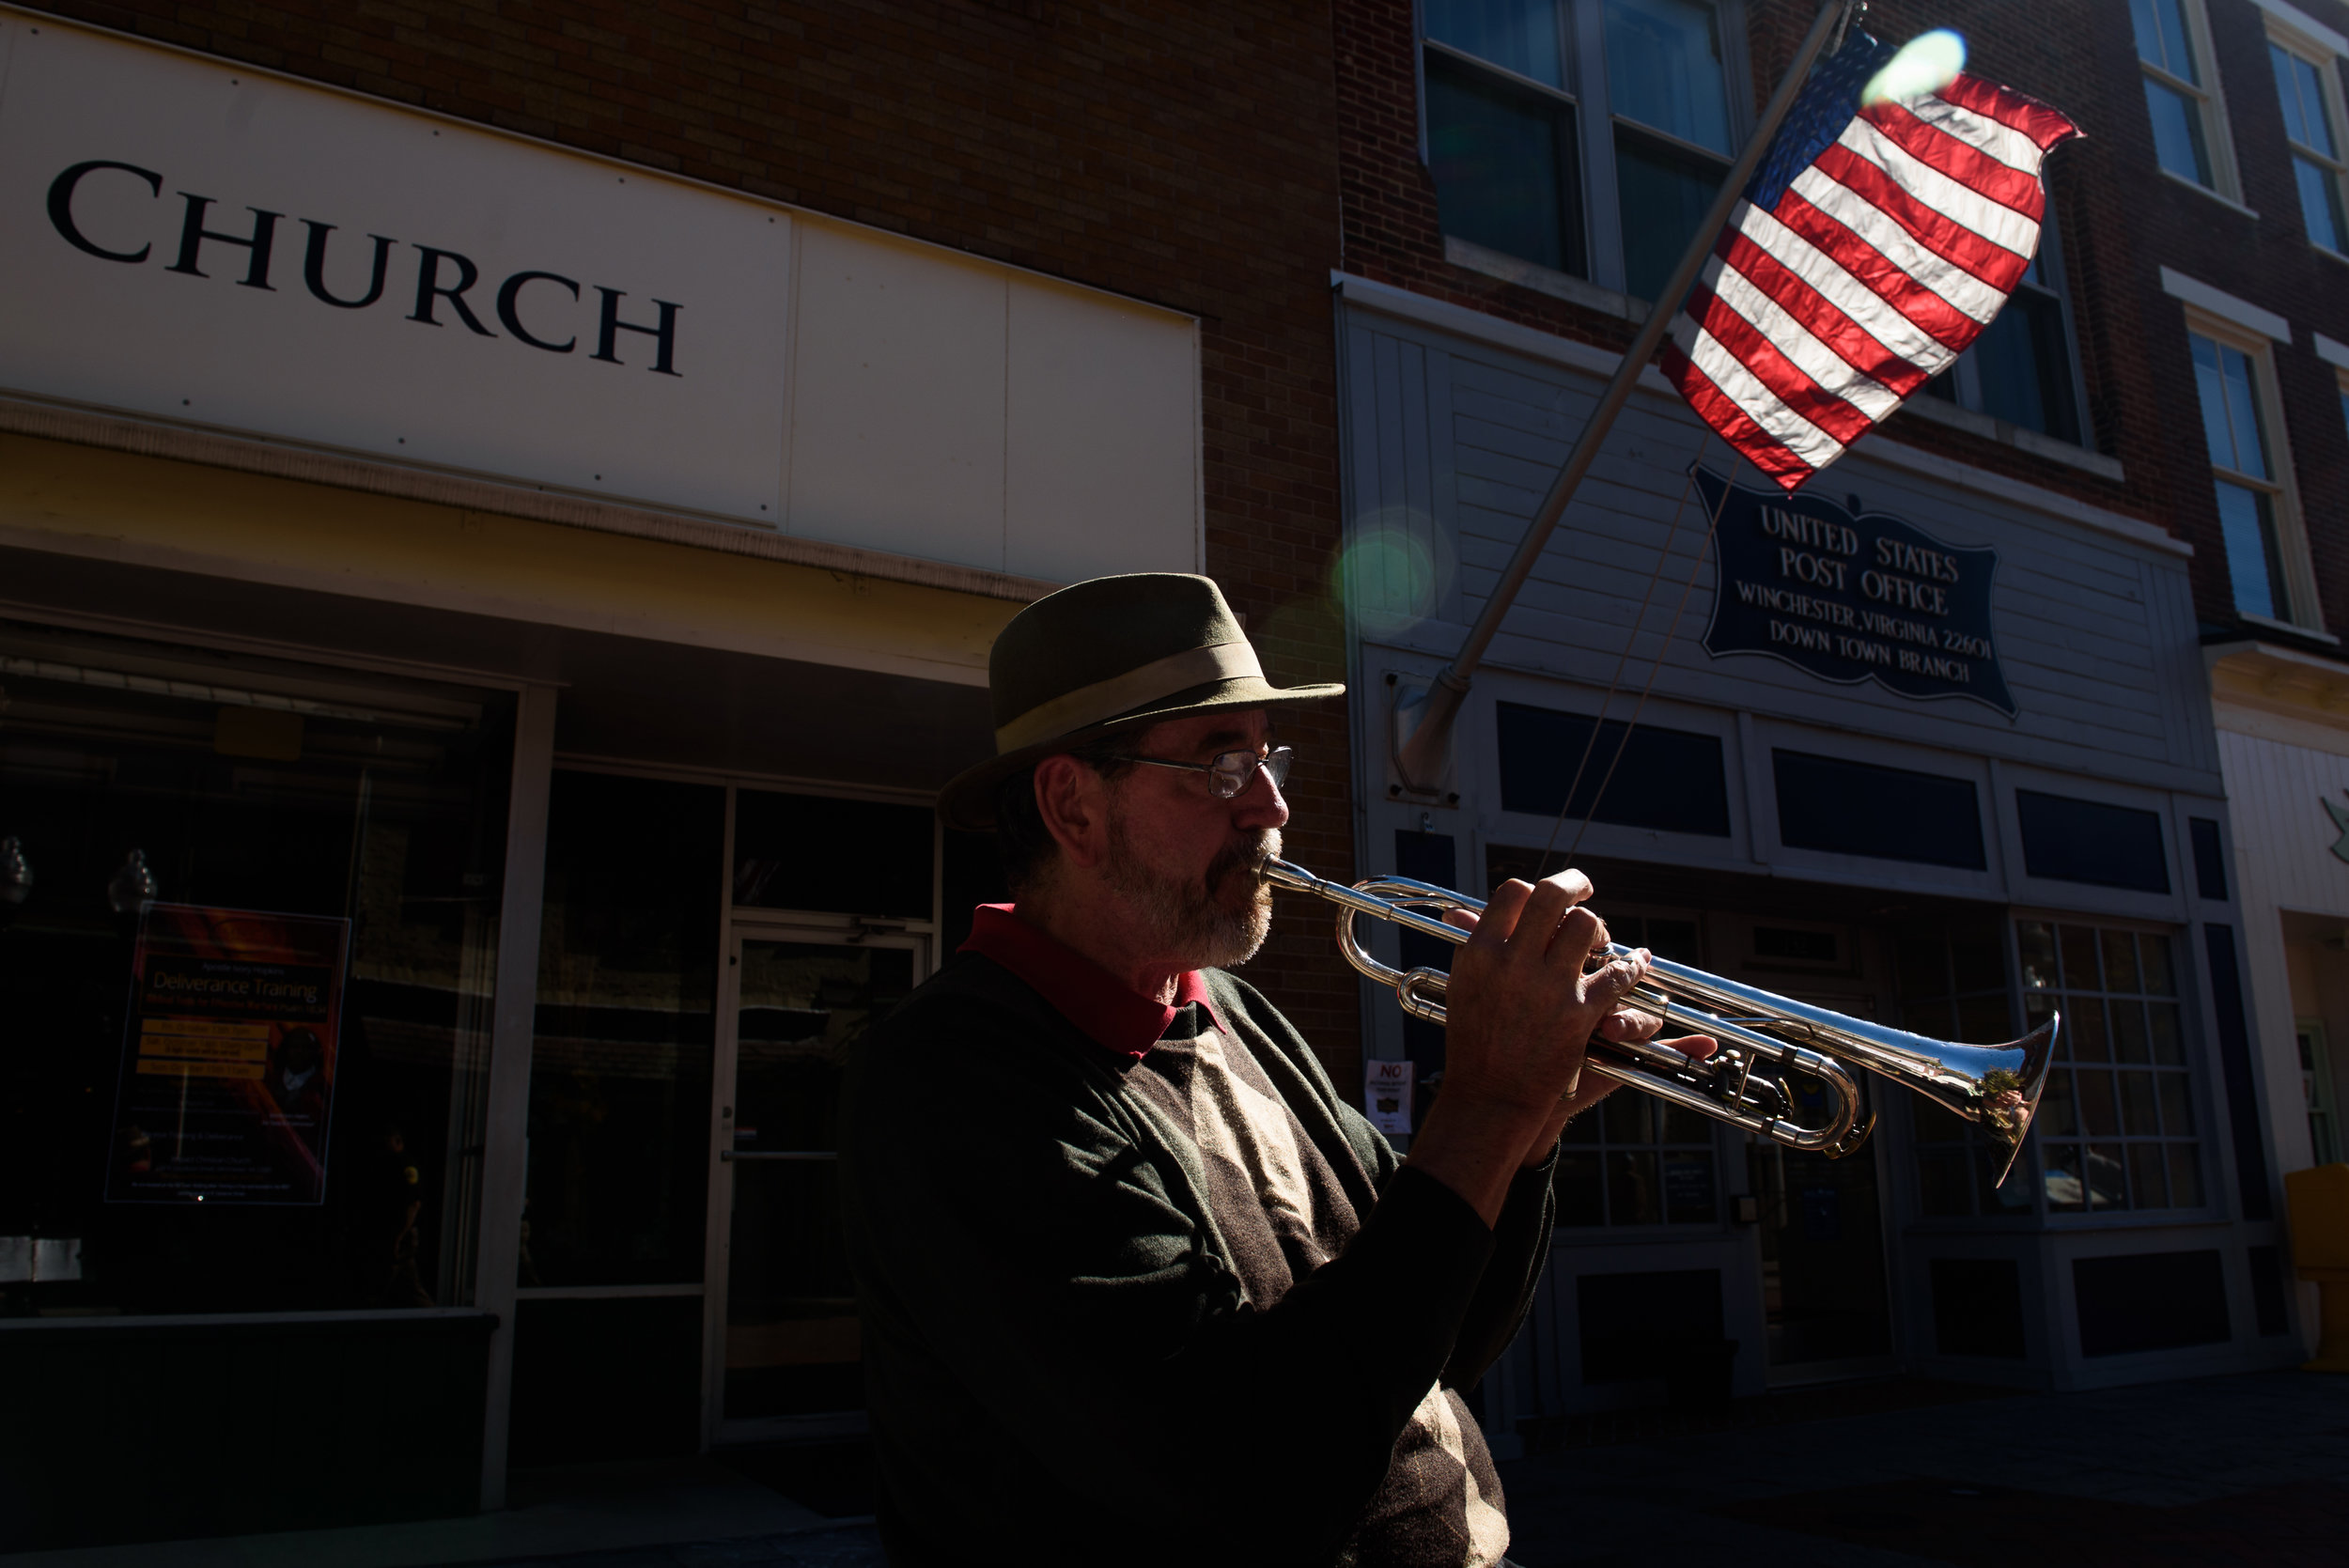 Daren Johnson, 64, busks on Tuesday, Oct. 17, 2017 along the promenade of the Loudoun Street Pedestrian Mall in Winchester, Va. Johnson, a retired school teacher and former supporter of Hillary Clinton, is exhausted by recent elections, but will vote in the upcoming gubernatorial election. Being uninsured and relying on a free healthcare clinic he cares deeply about the state of healthcare in America. Read more about this story in  The New York Post .